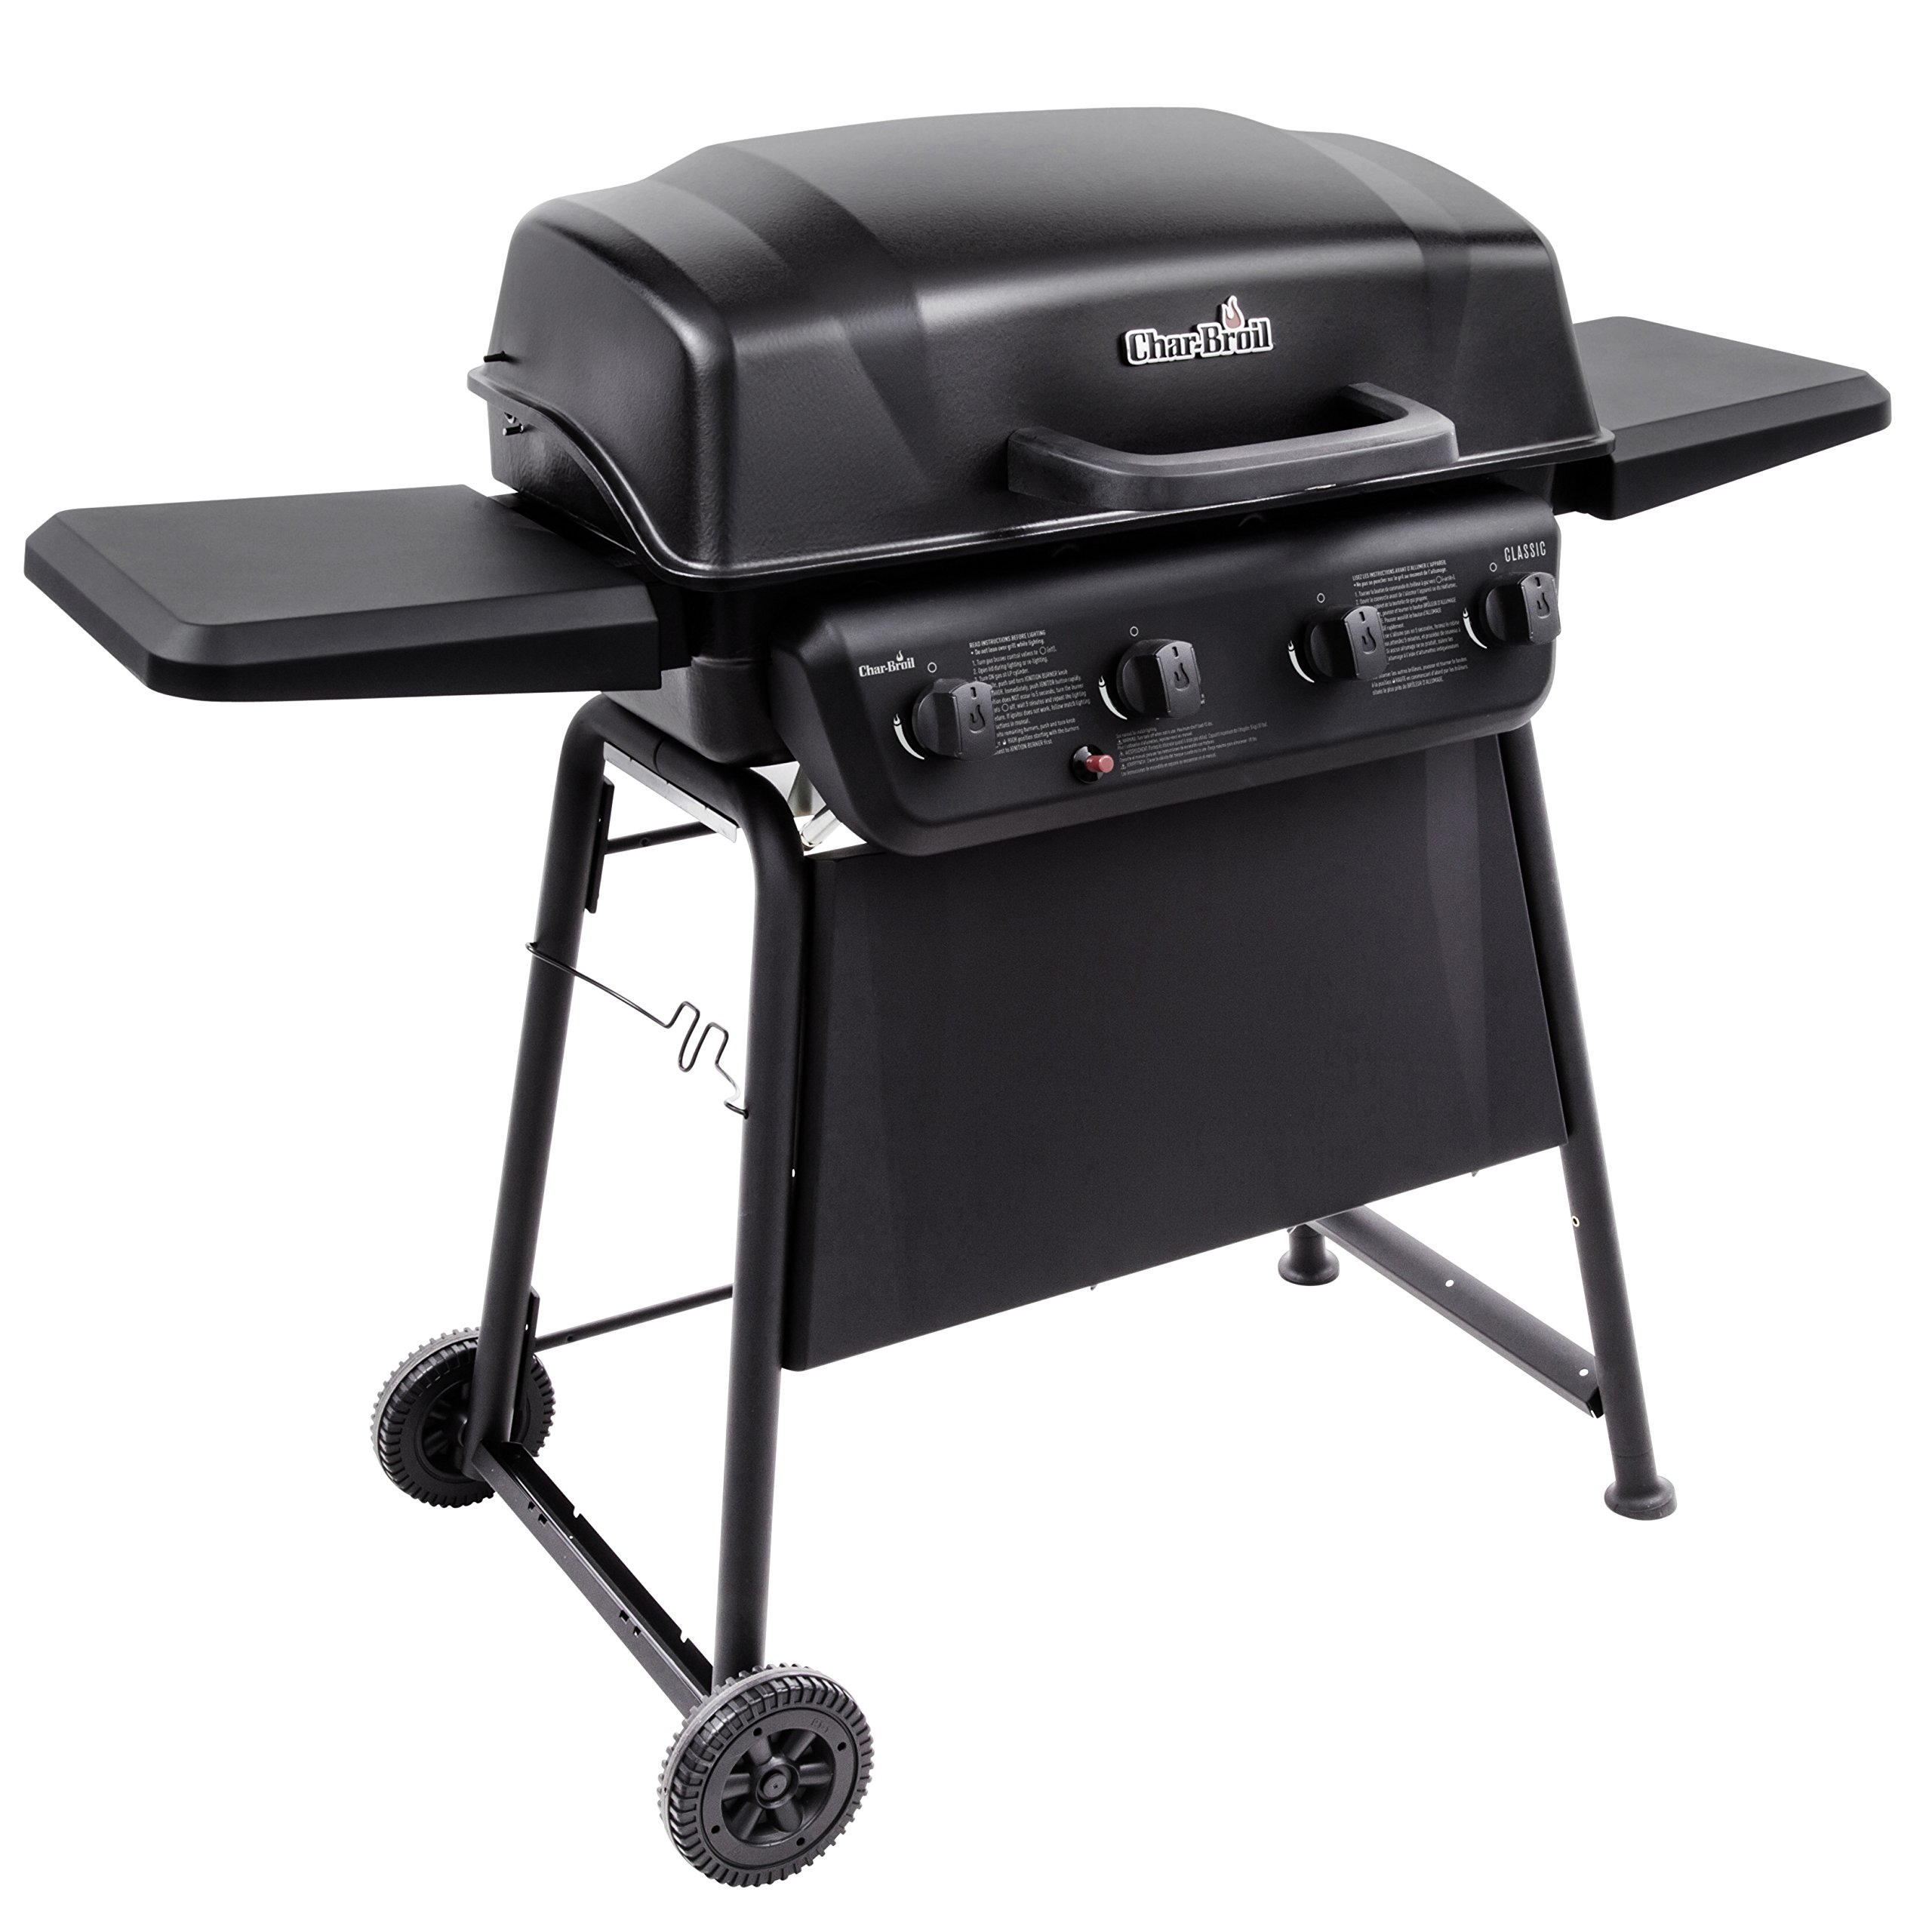 Char-Broil Classic 405 4-Burner Liquid Propane Gas Grill by Char-Broil